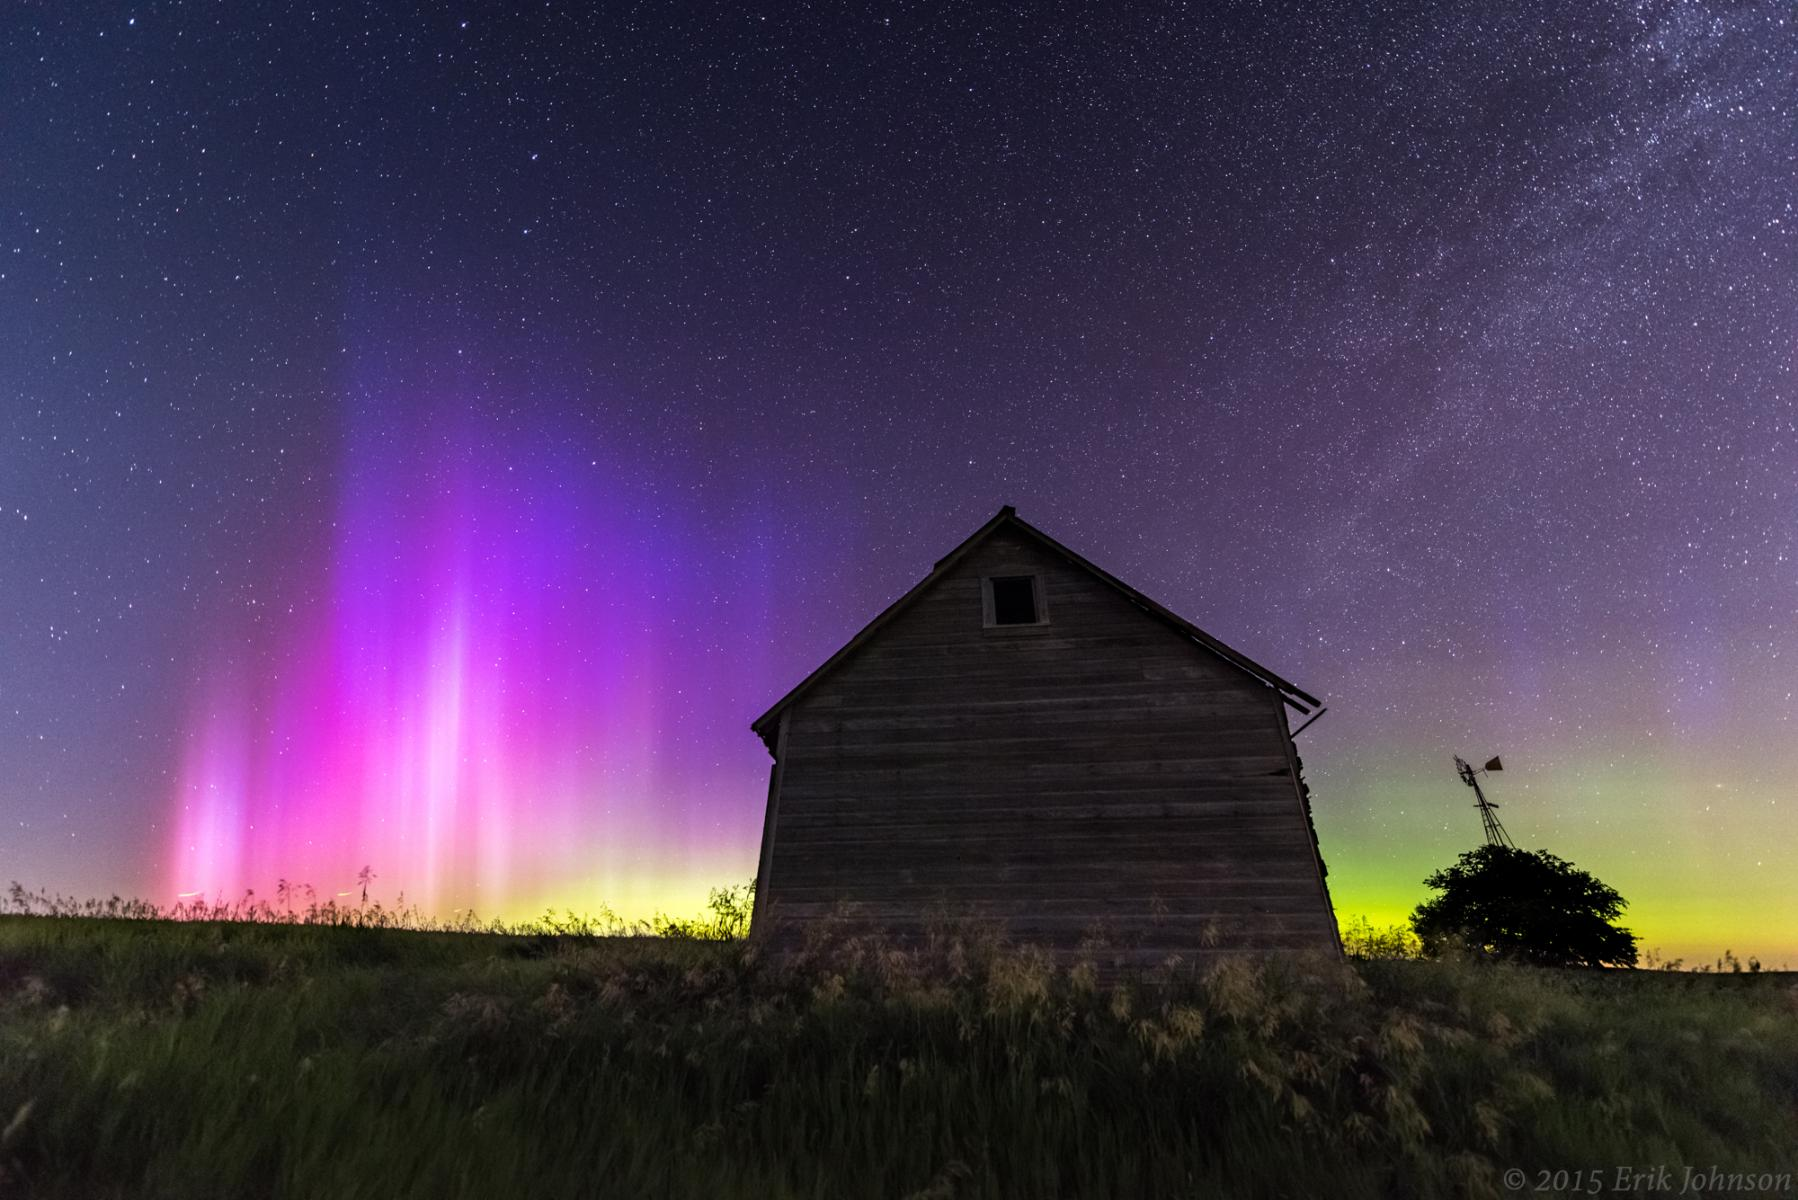 Aurora Borealis in the sky behind a wooden barn